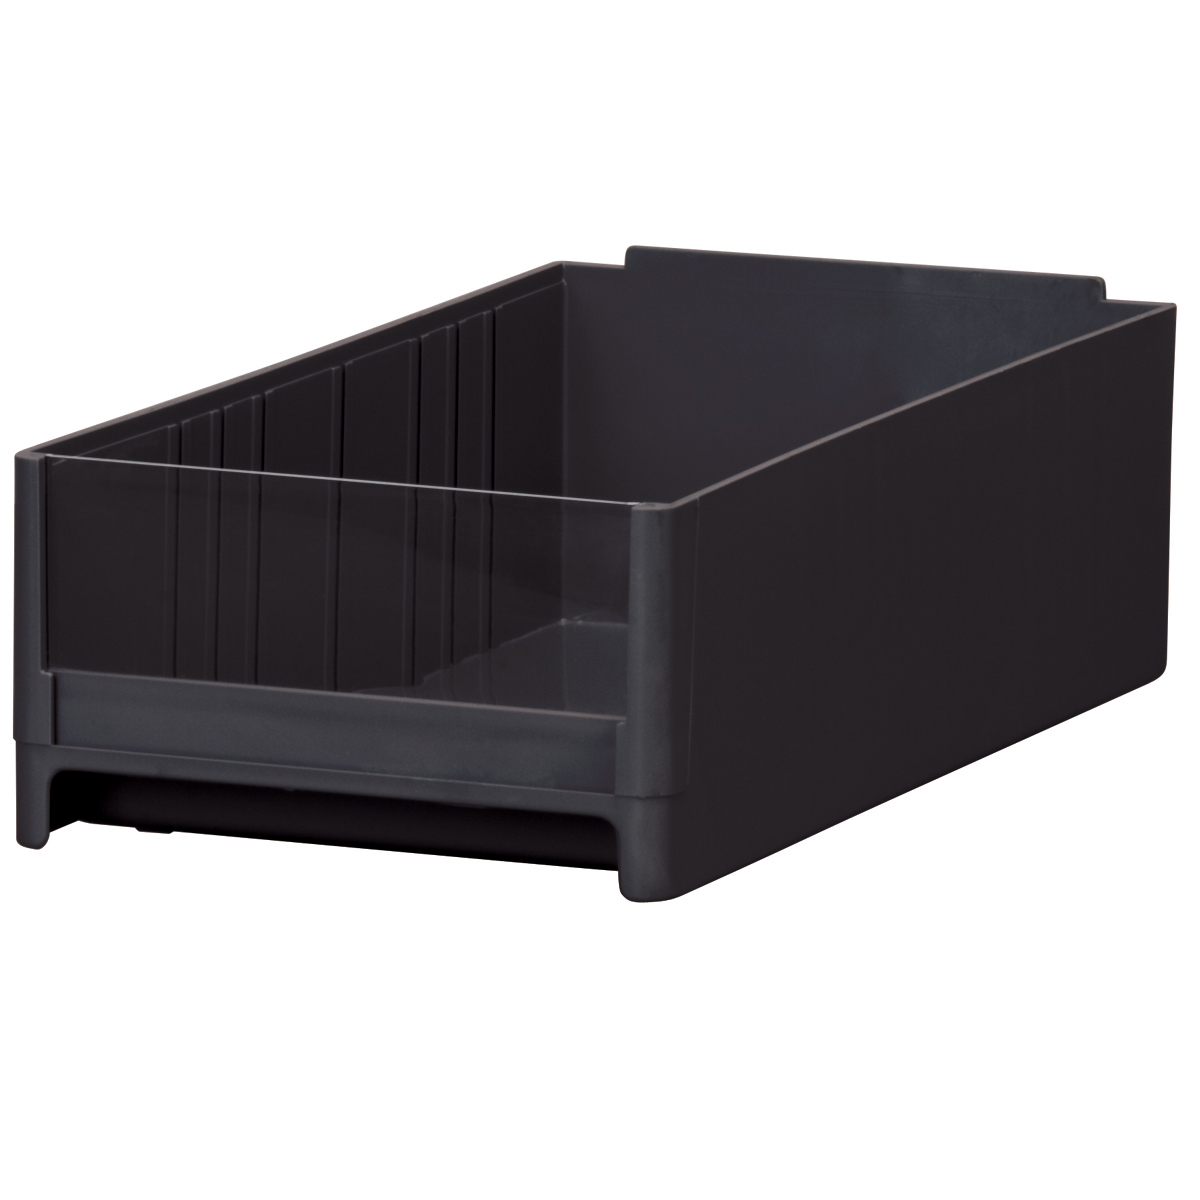 19-Series Cabinet Drawer 5-3/16 x 3-1/16 x 10-9/16, Black.  This item sold in carton quantities of 15.